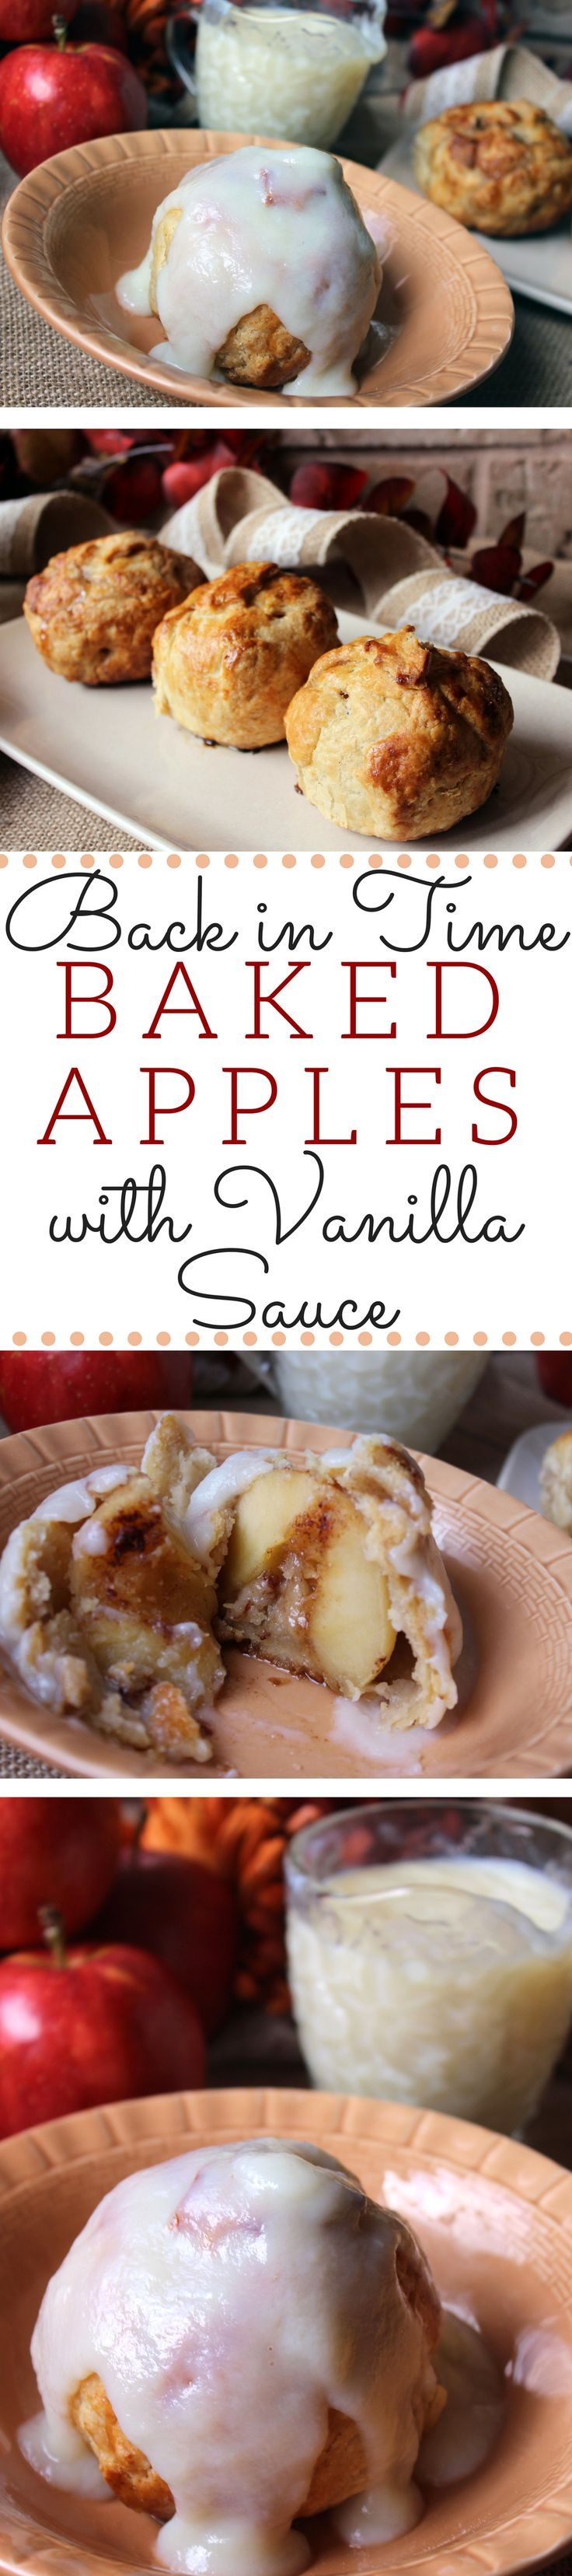 Wow, this apple dumpling is great! The crust is light and delicate with a warm cinnamon filled baked apple inside. What really makes this recipe special is the vanilla sauce